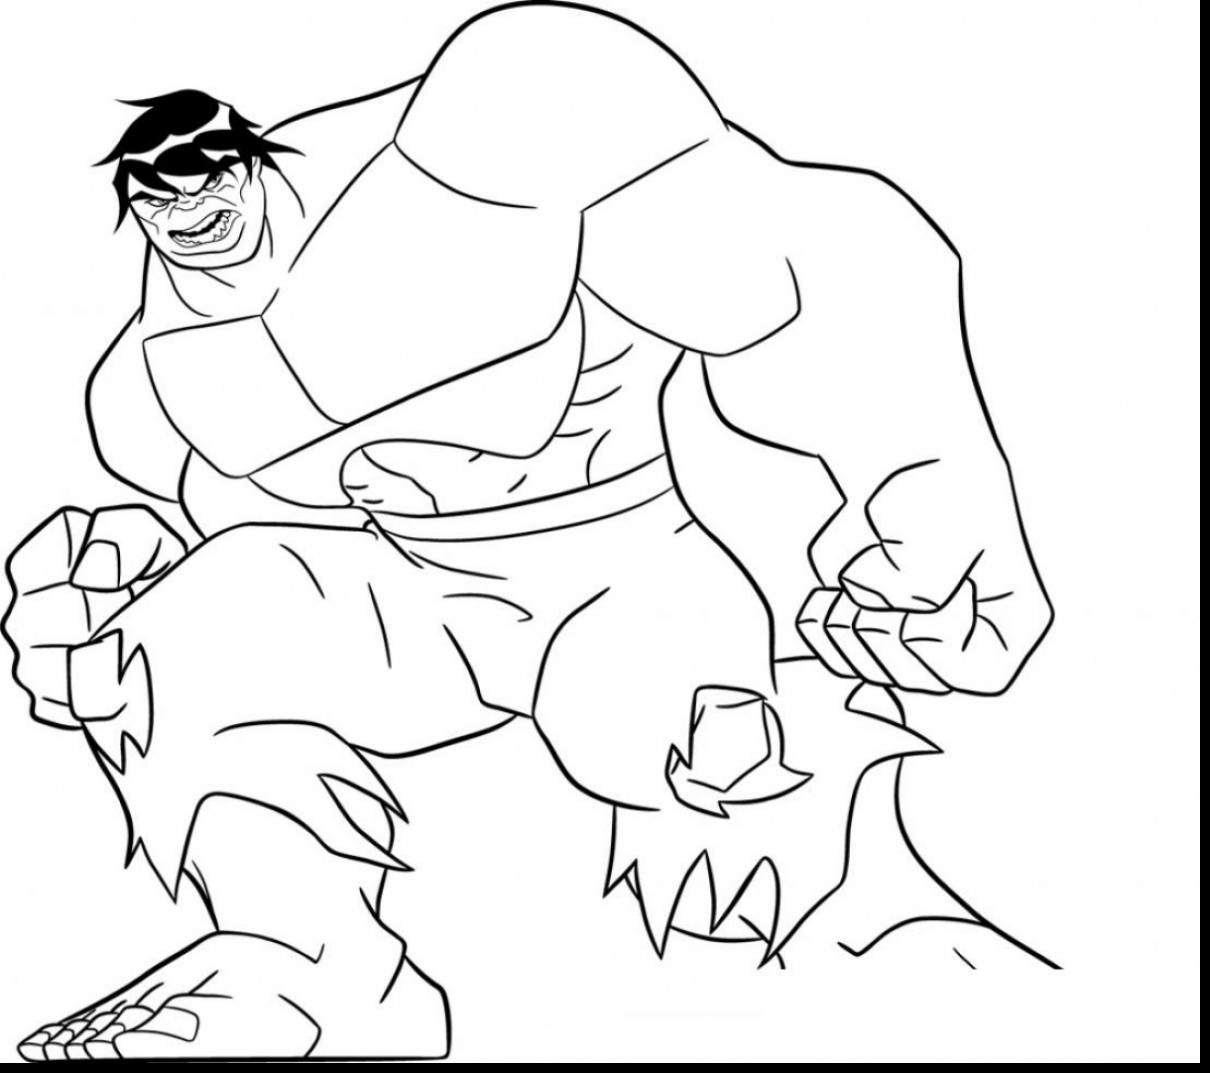 hulk colouring page hulk coloring pages lets coloring page colouring hulk